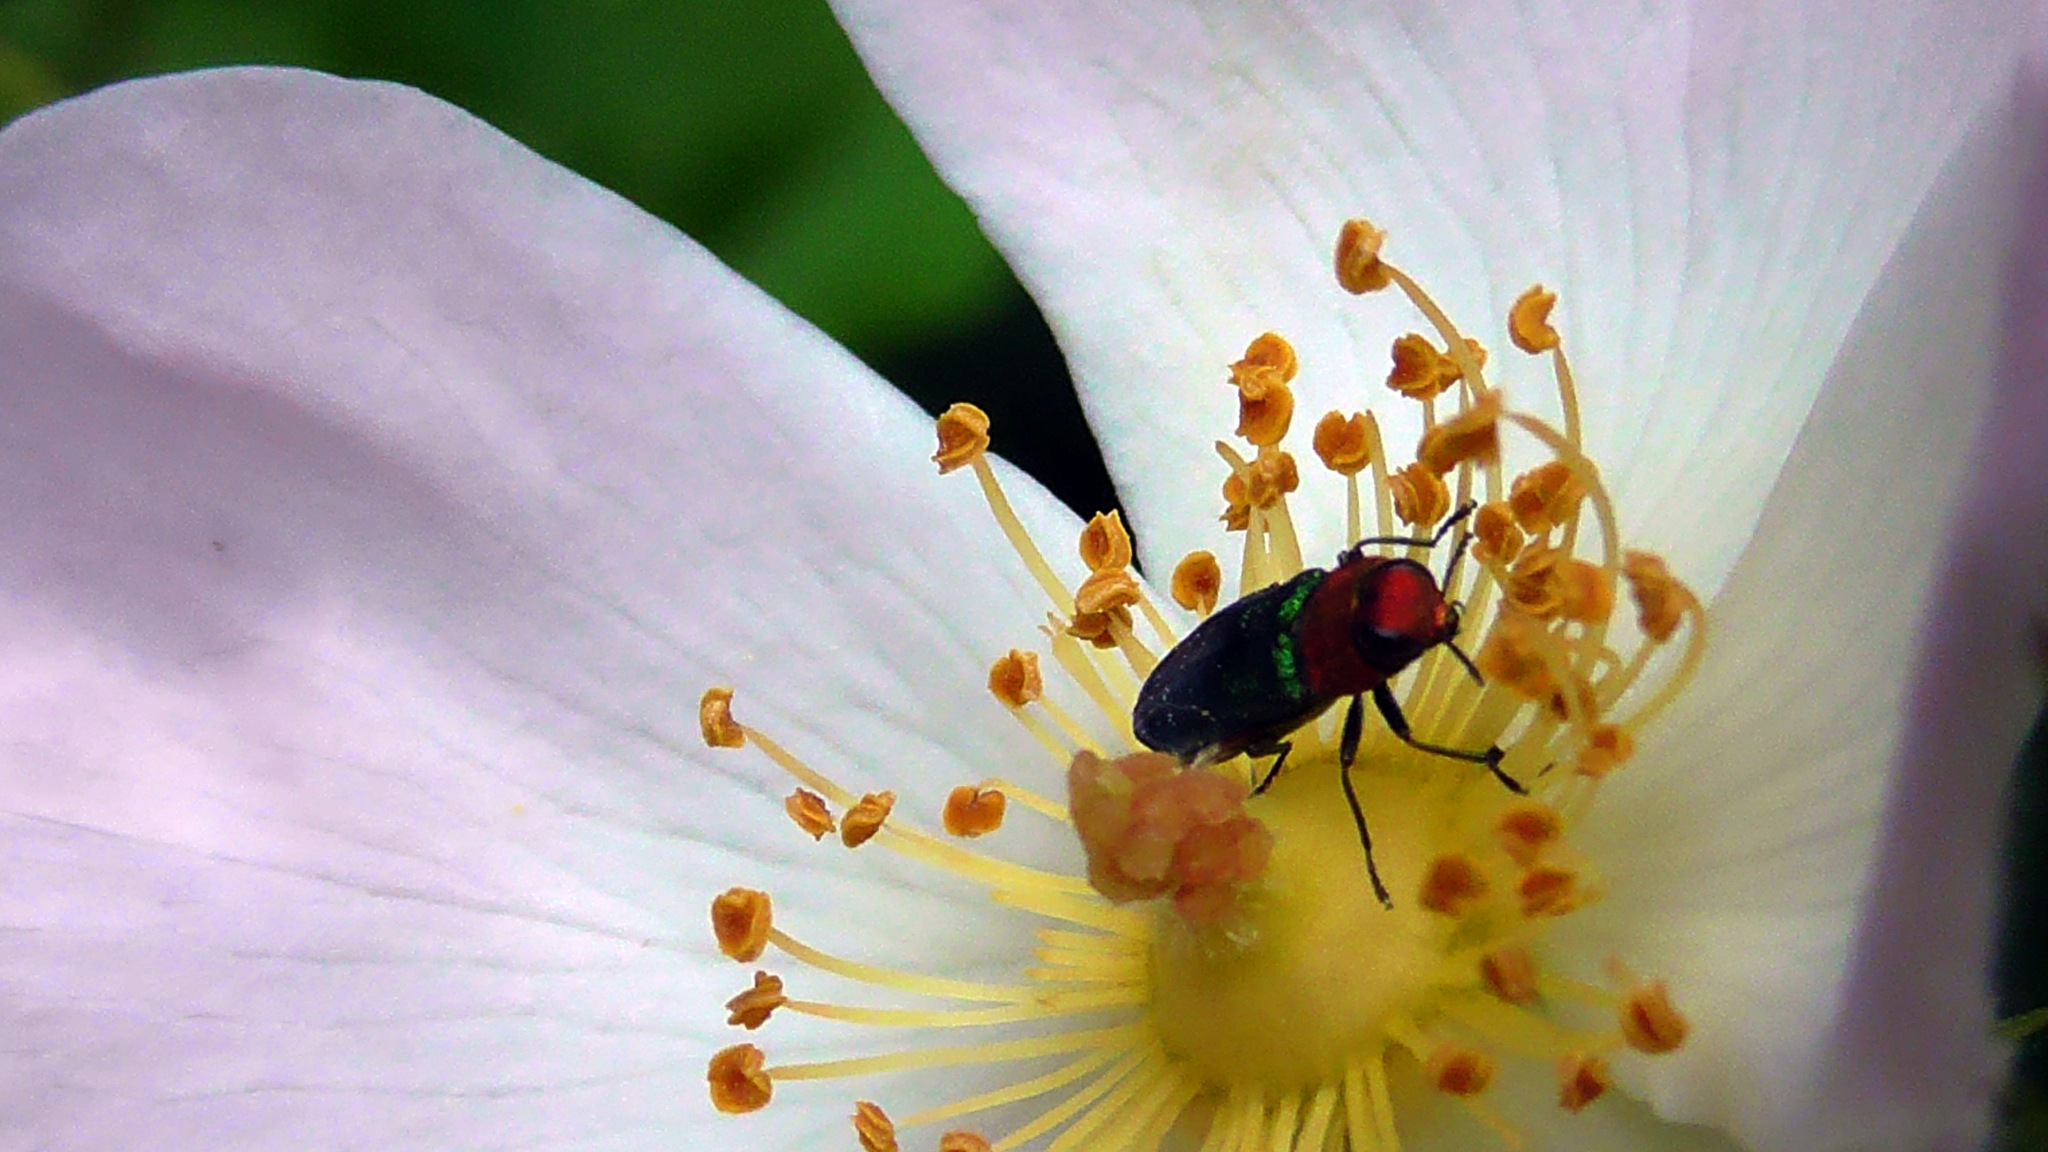 Wild rose and green beetle by evakalocsay